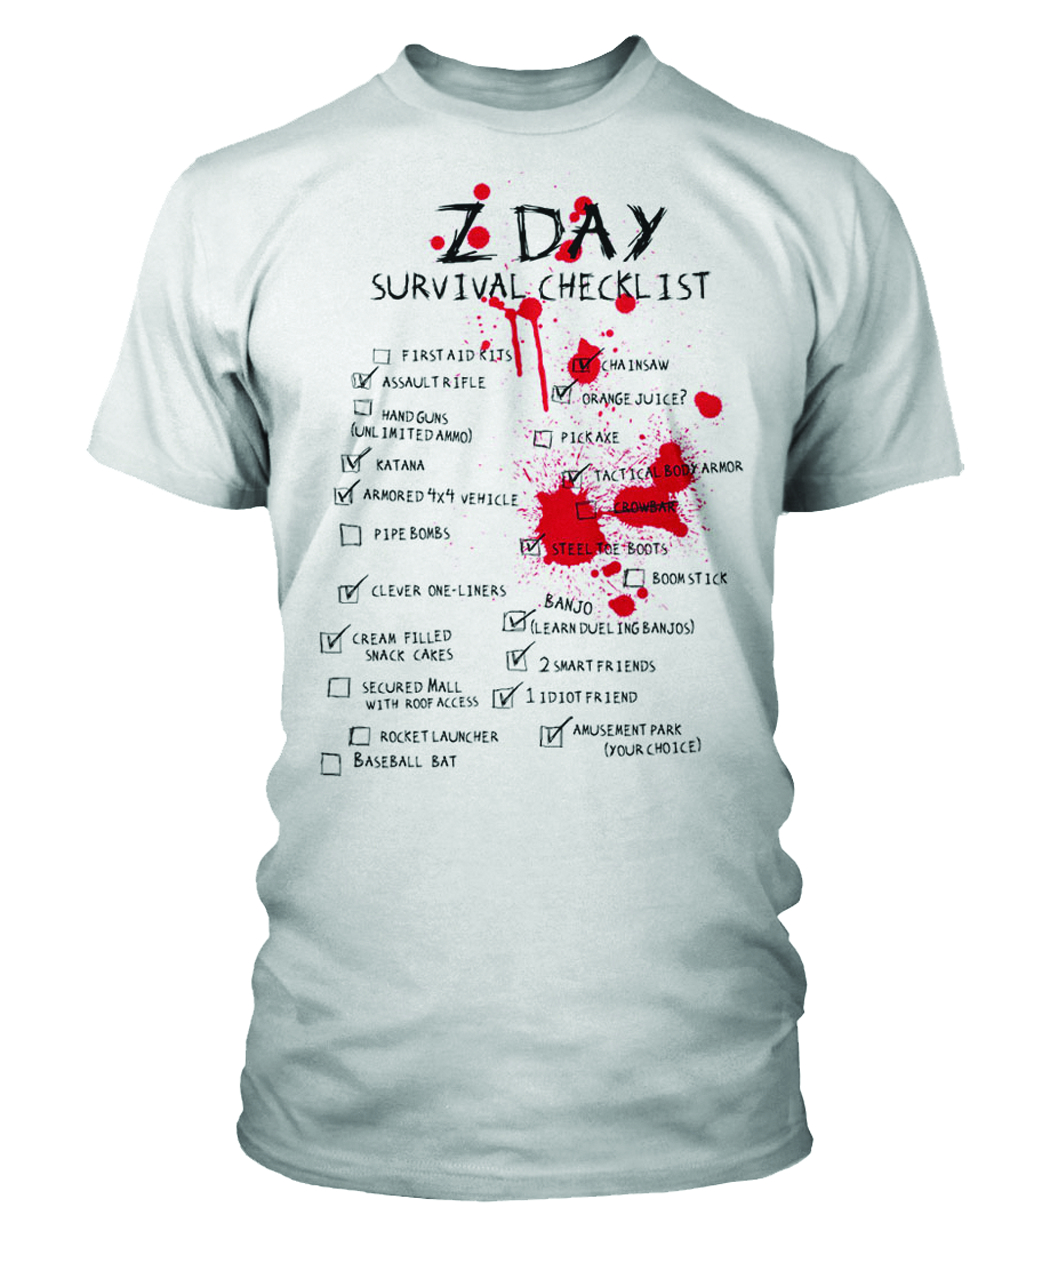 Z-DAY SURVIVAL CHECKLIST WHT T/S LG